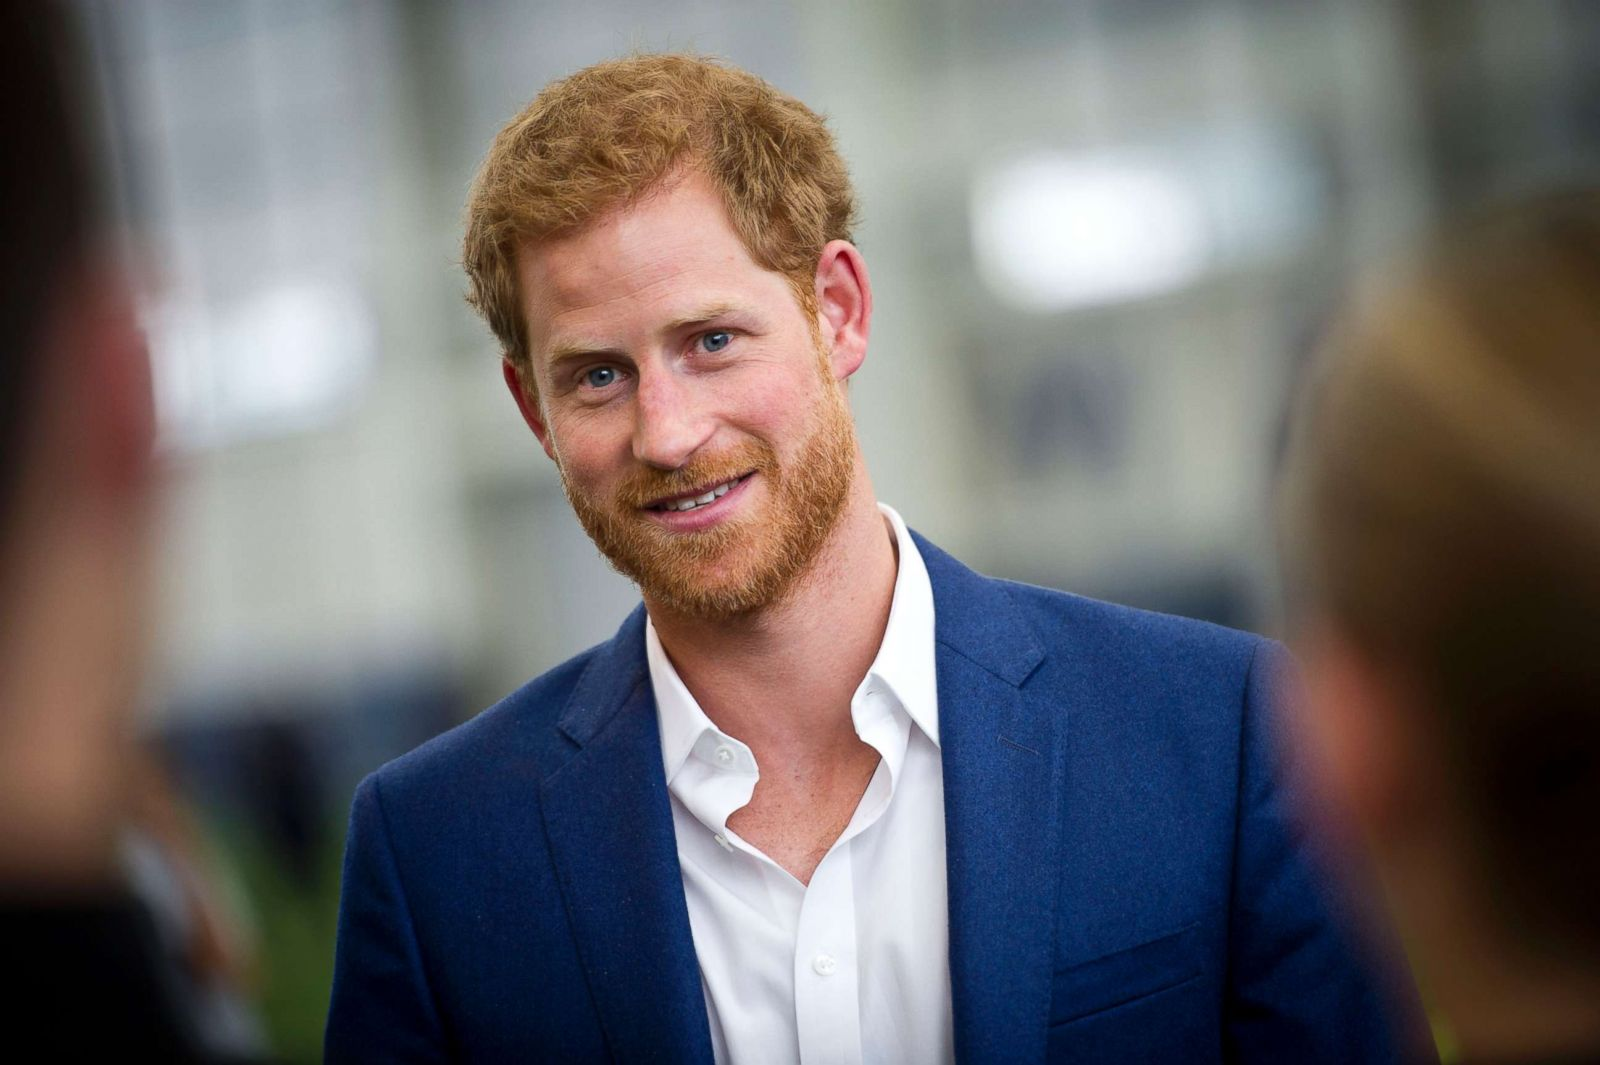 prince harry through the years photos abc news prince harry through the years photos